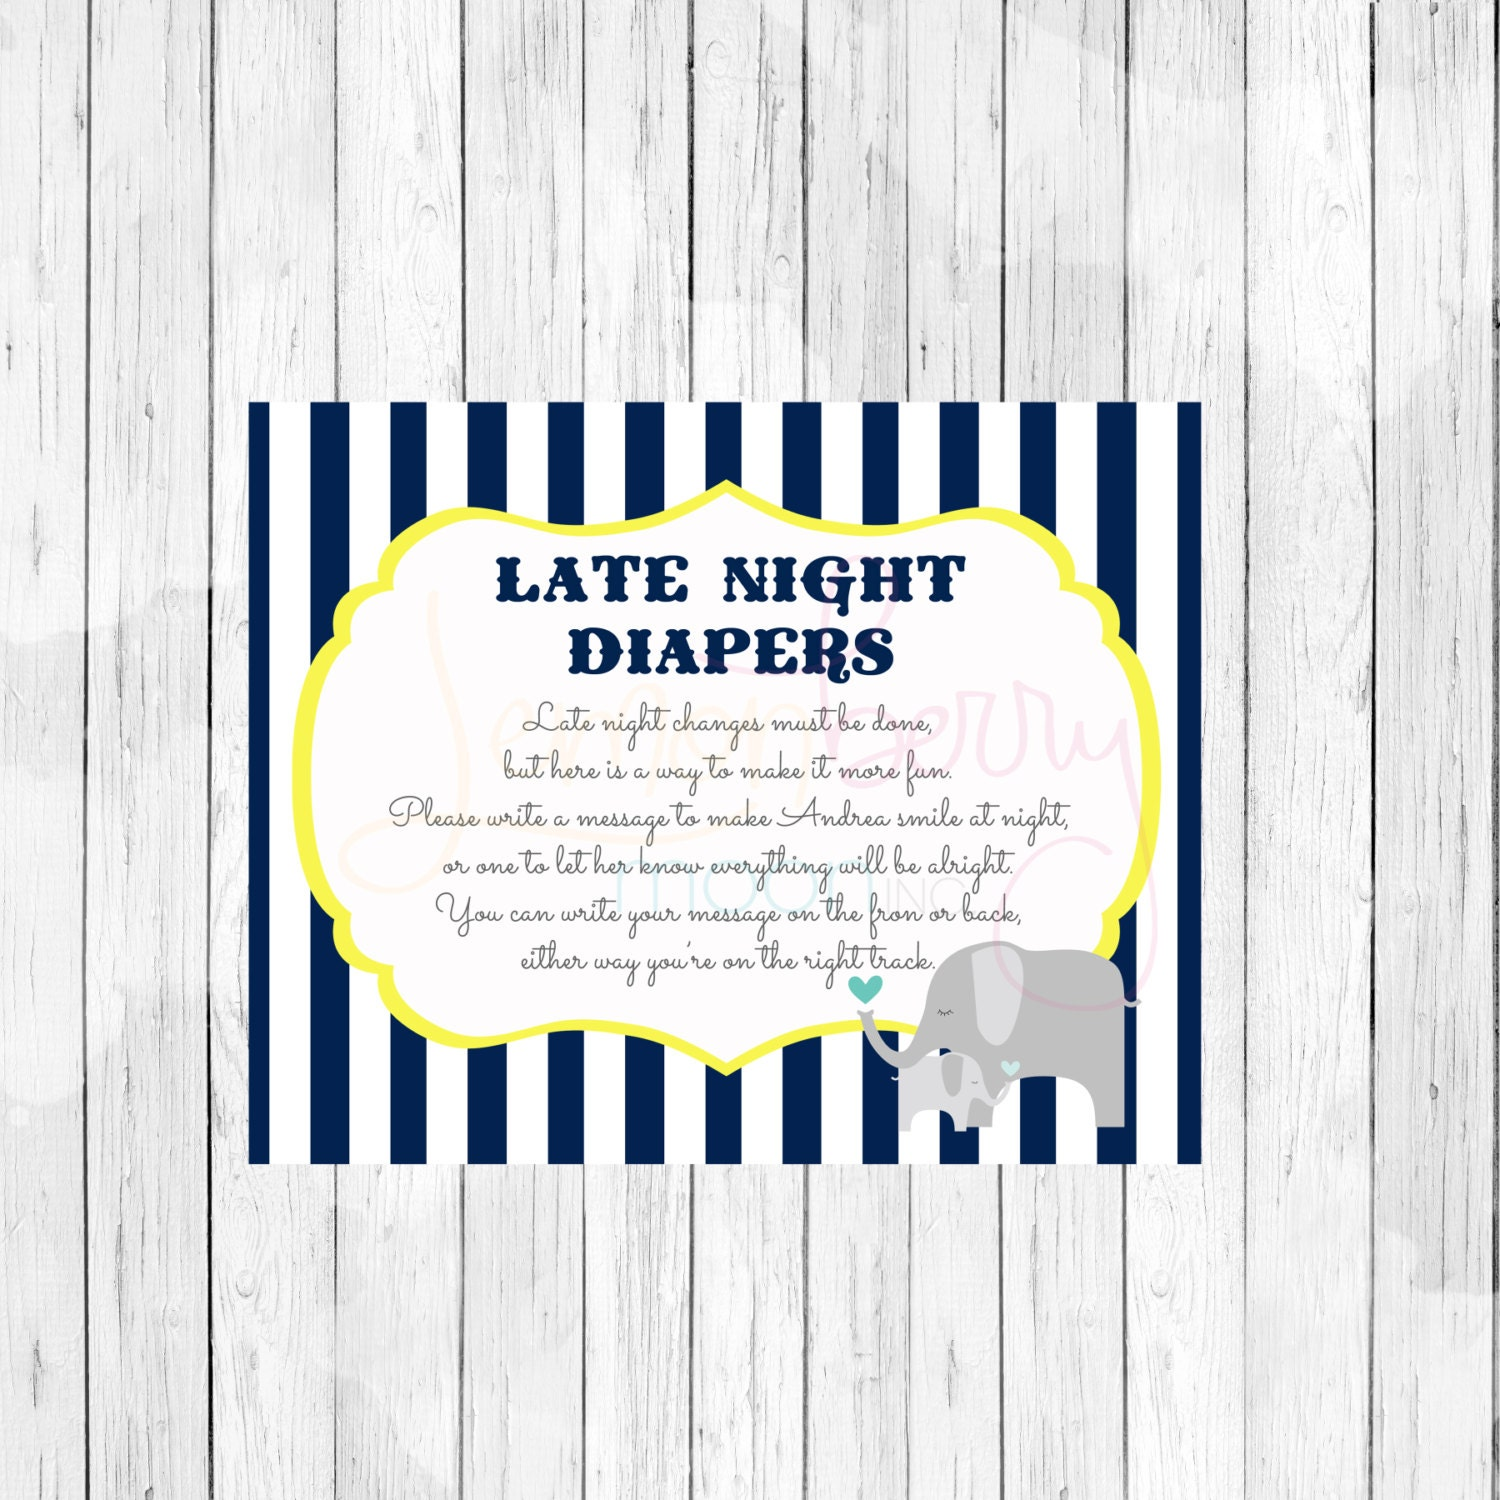 photograph regarding Late Night Diaper Messages Free Printable known as Late Evening Diaper Messages Free of charge Printable Cost-free Printable